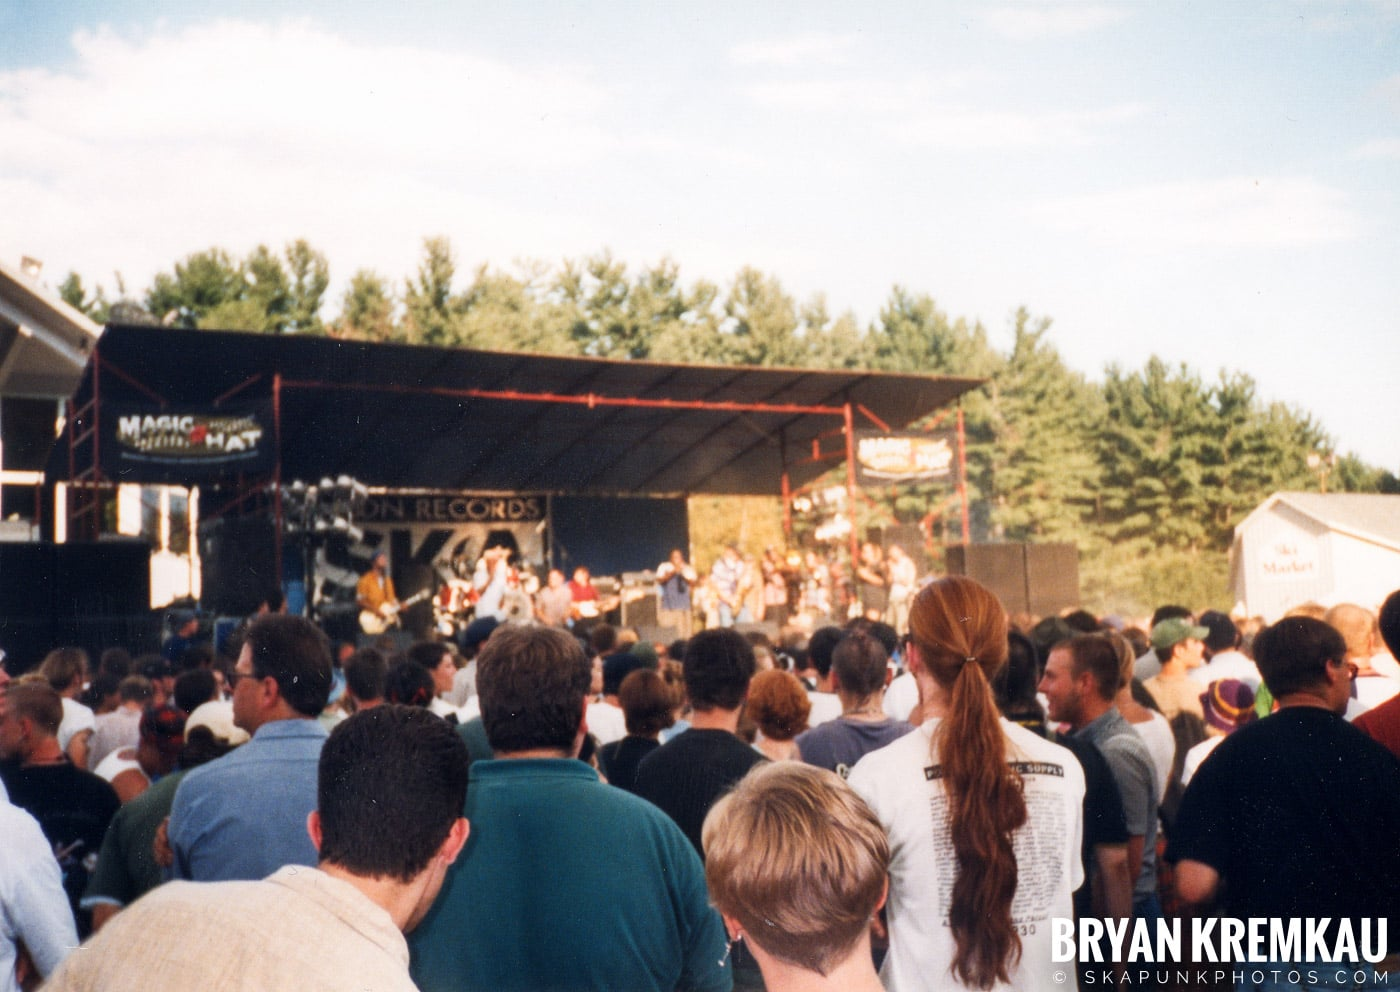 Crowd Shots @ New England Ska Fest 98, Westford, MA - 8.22.98 (5)